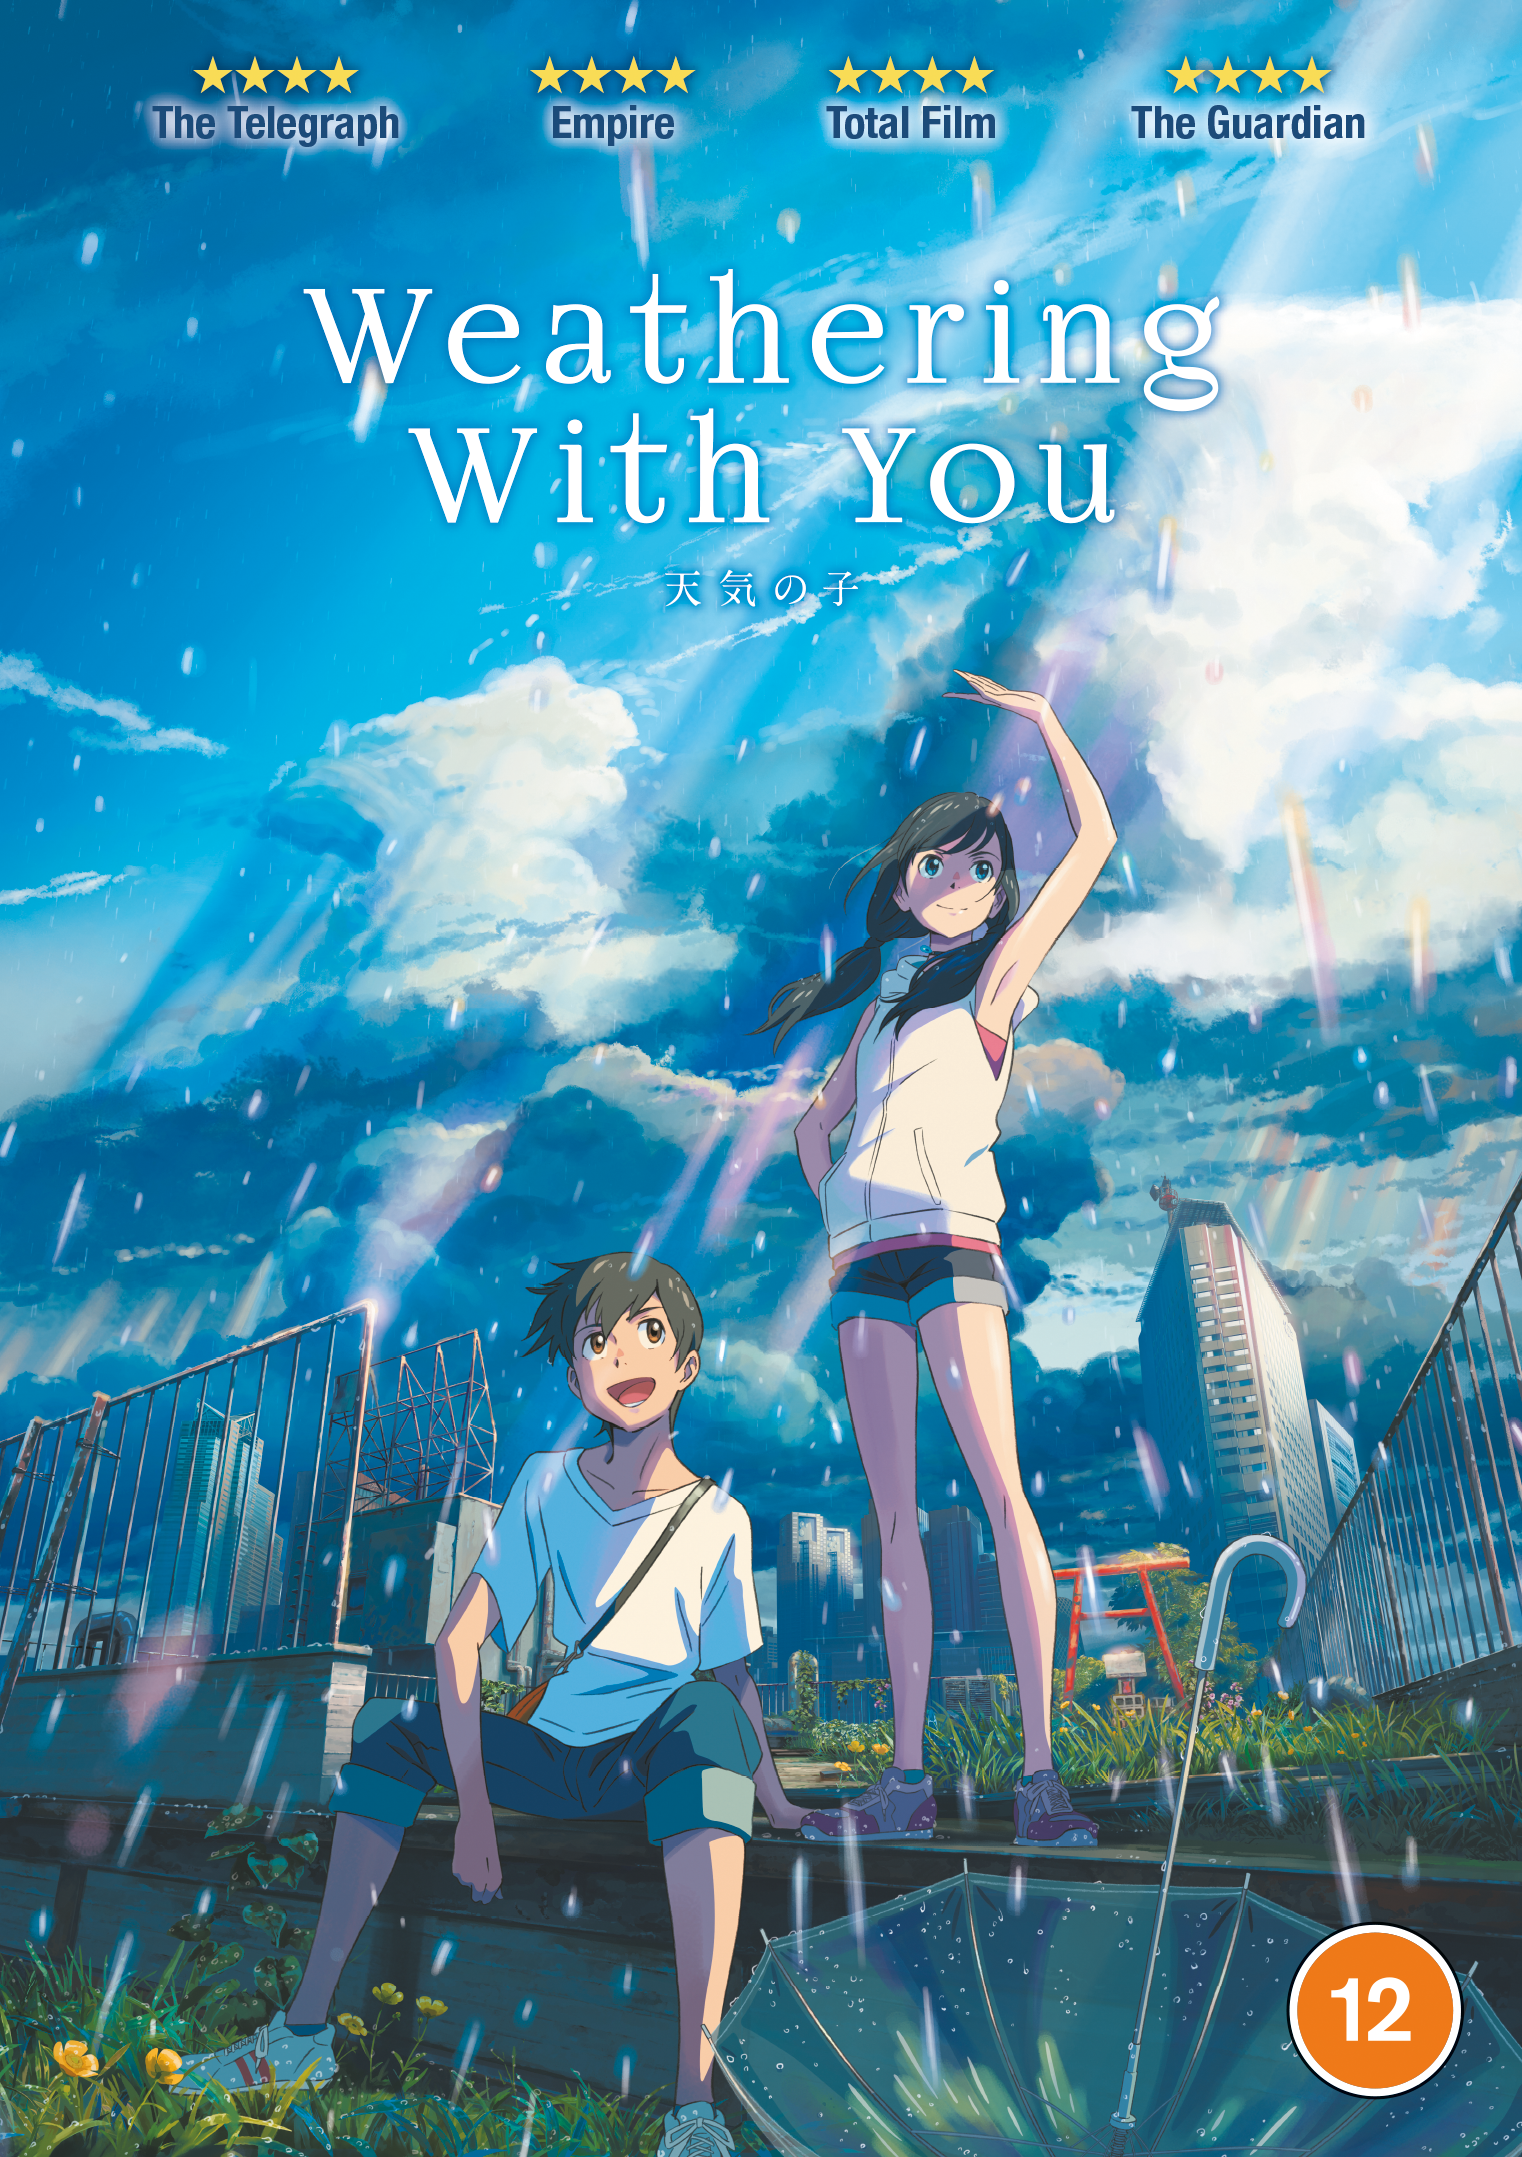 Weathering with You review: Steal My Sunshine